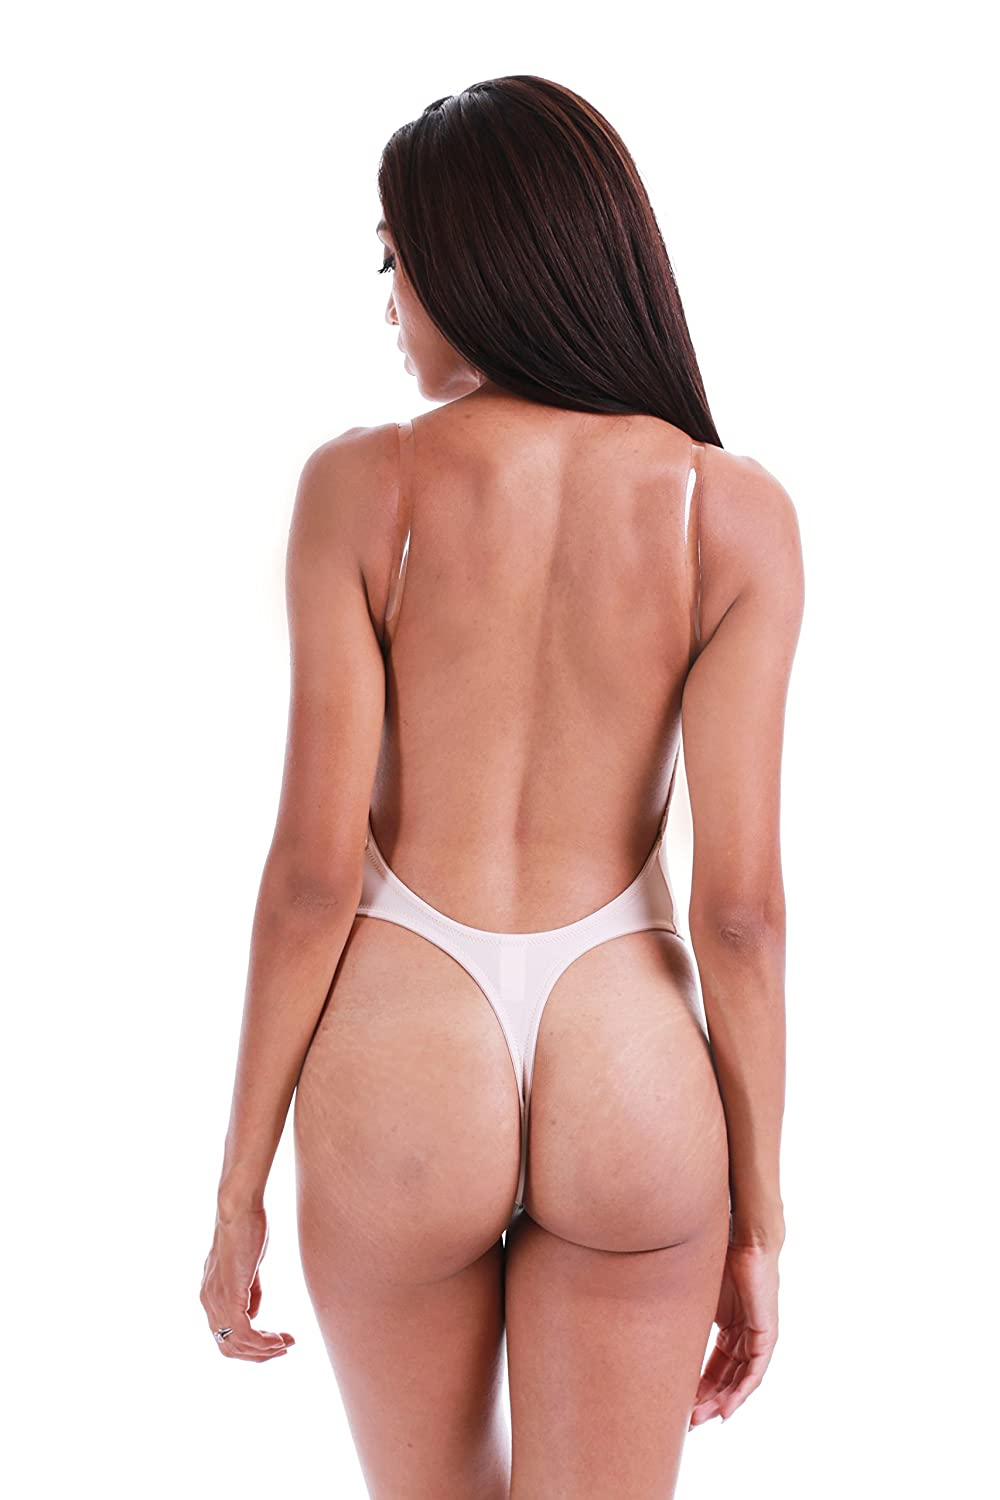 bbc9f54330 Plunge Backless Thong Bodysuit (29064) (L